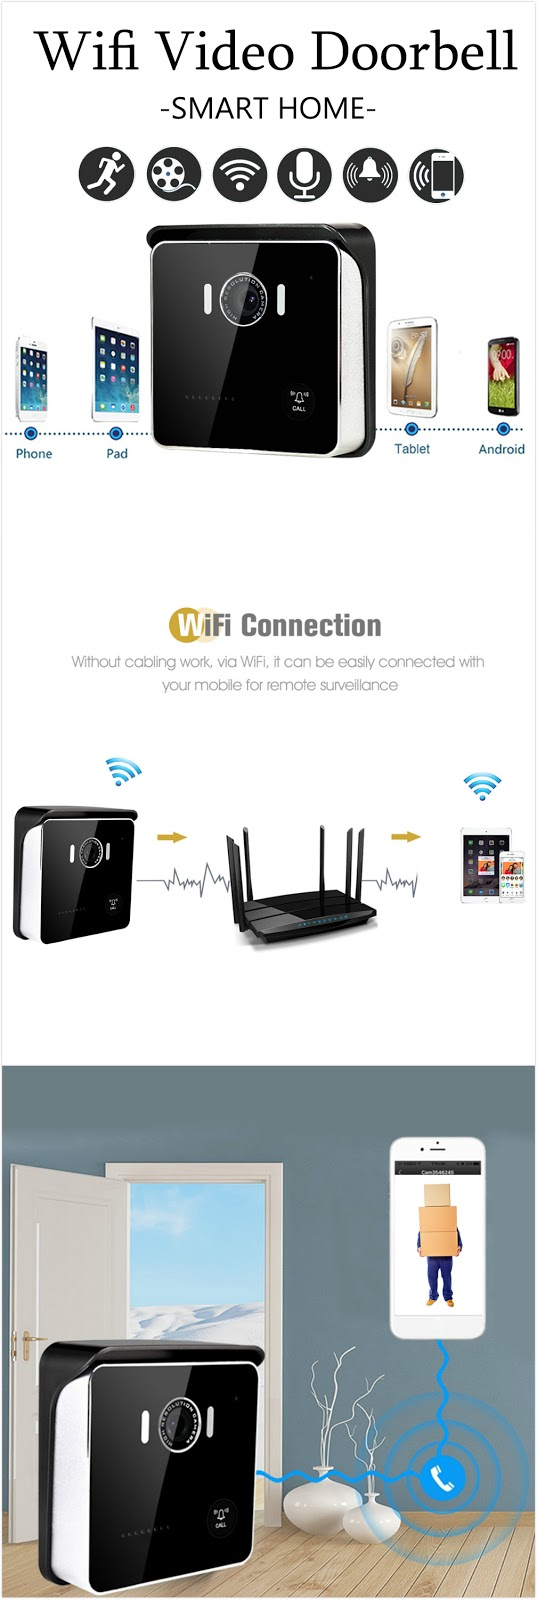 881c4c02781 To Buy It Click Here Specification: Color: Black Resolution: 1280x720  LensAngle: 92° IR range: Approx. 3 - 5m Wifi: Support Night vision: Support  IP Level: ...